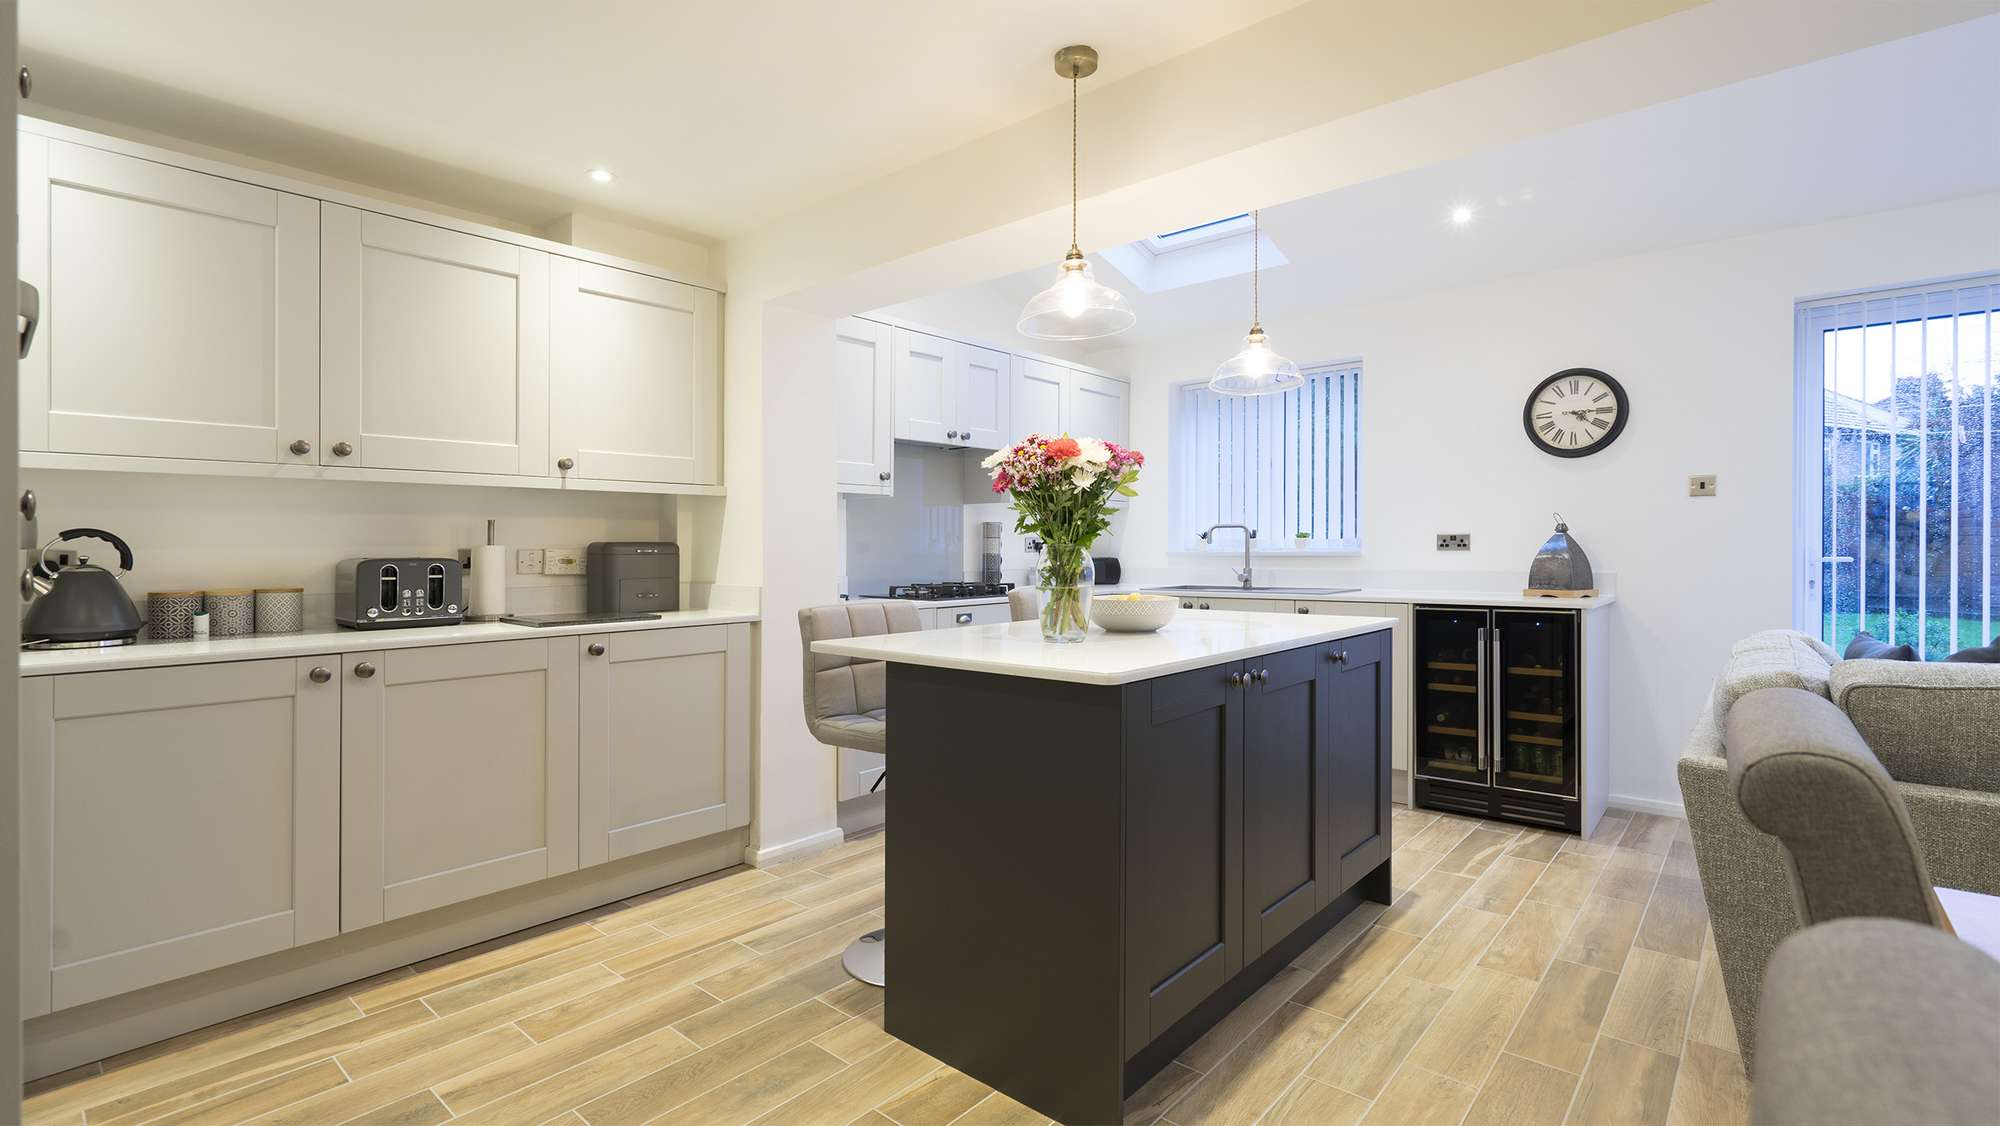 Light grey shaker kitchen with dark grey contrasting island and seating area.